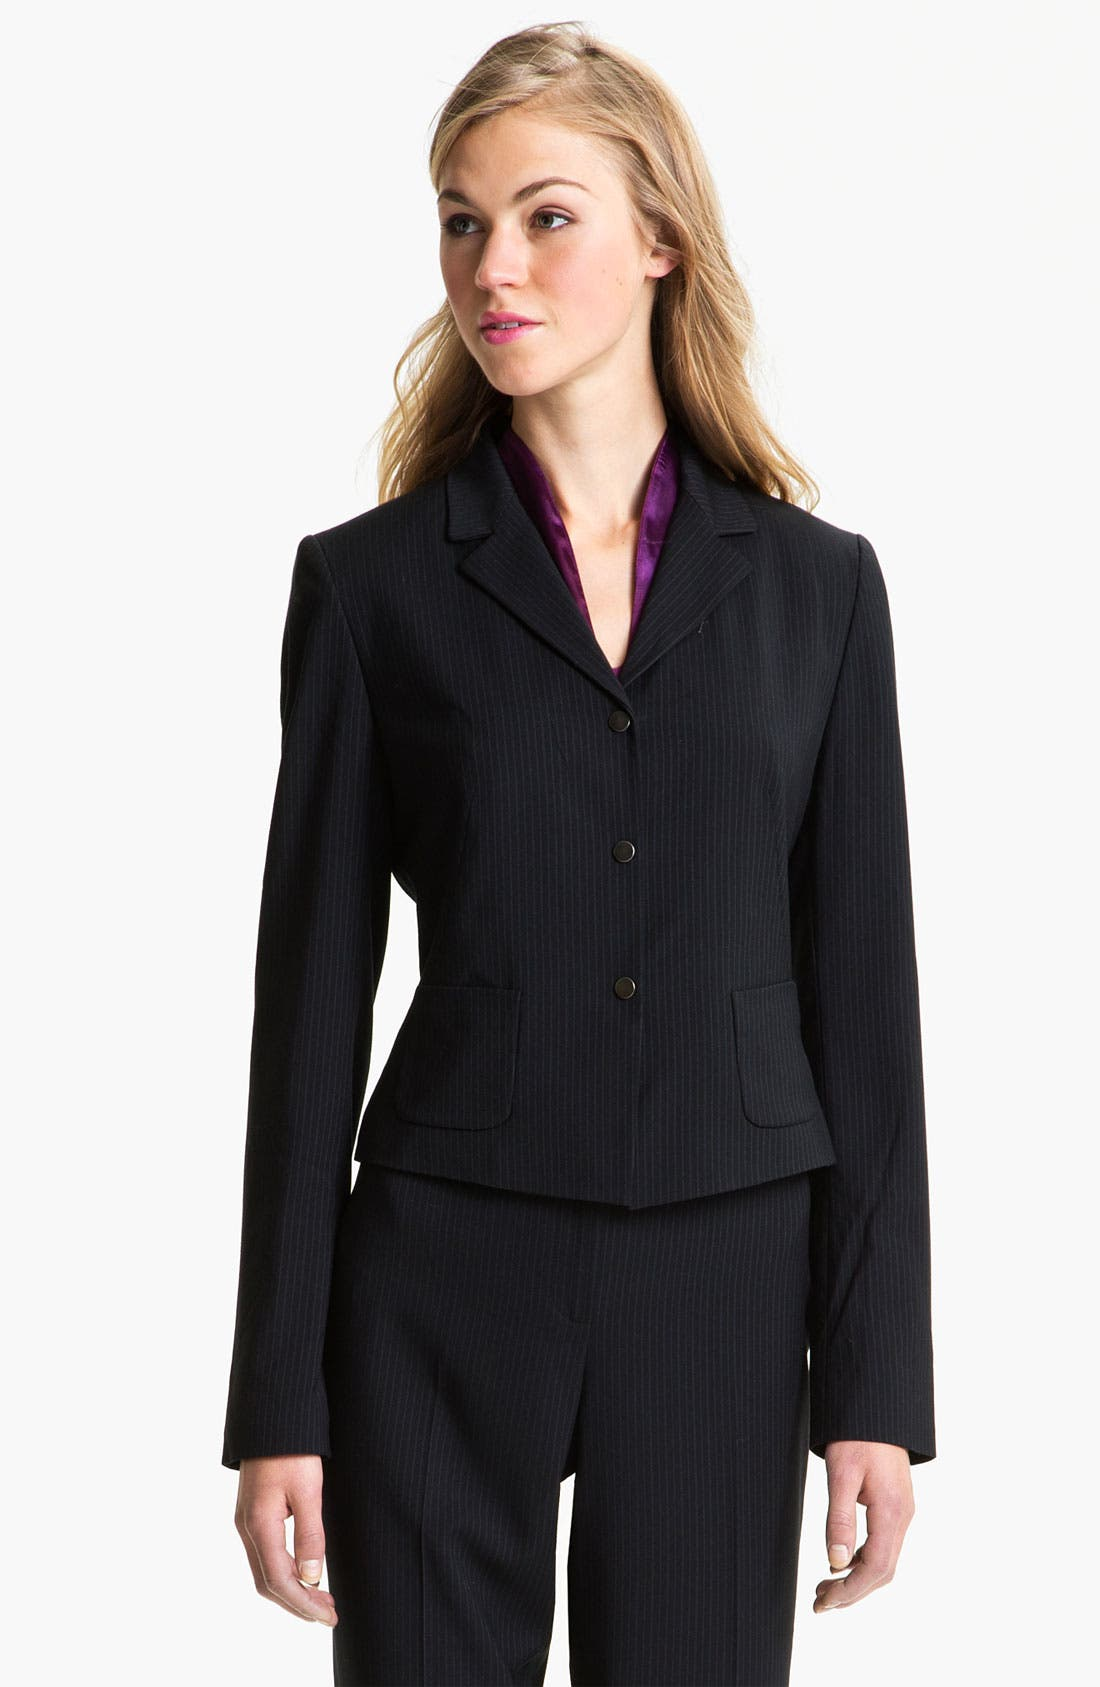 Alternate Image 1 Selected - T Tahari 'Roxy' Jacket (Petite)